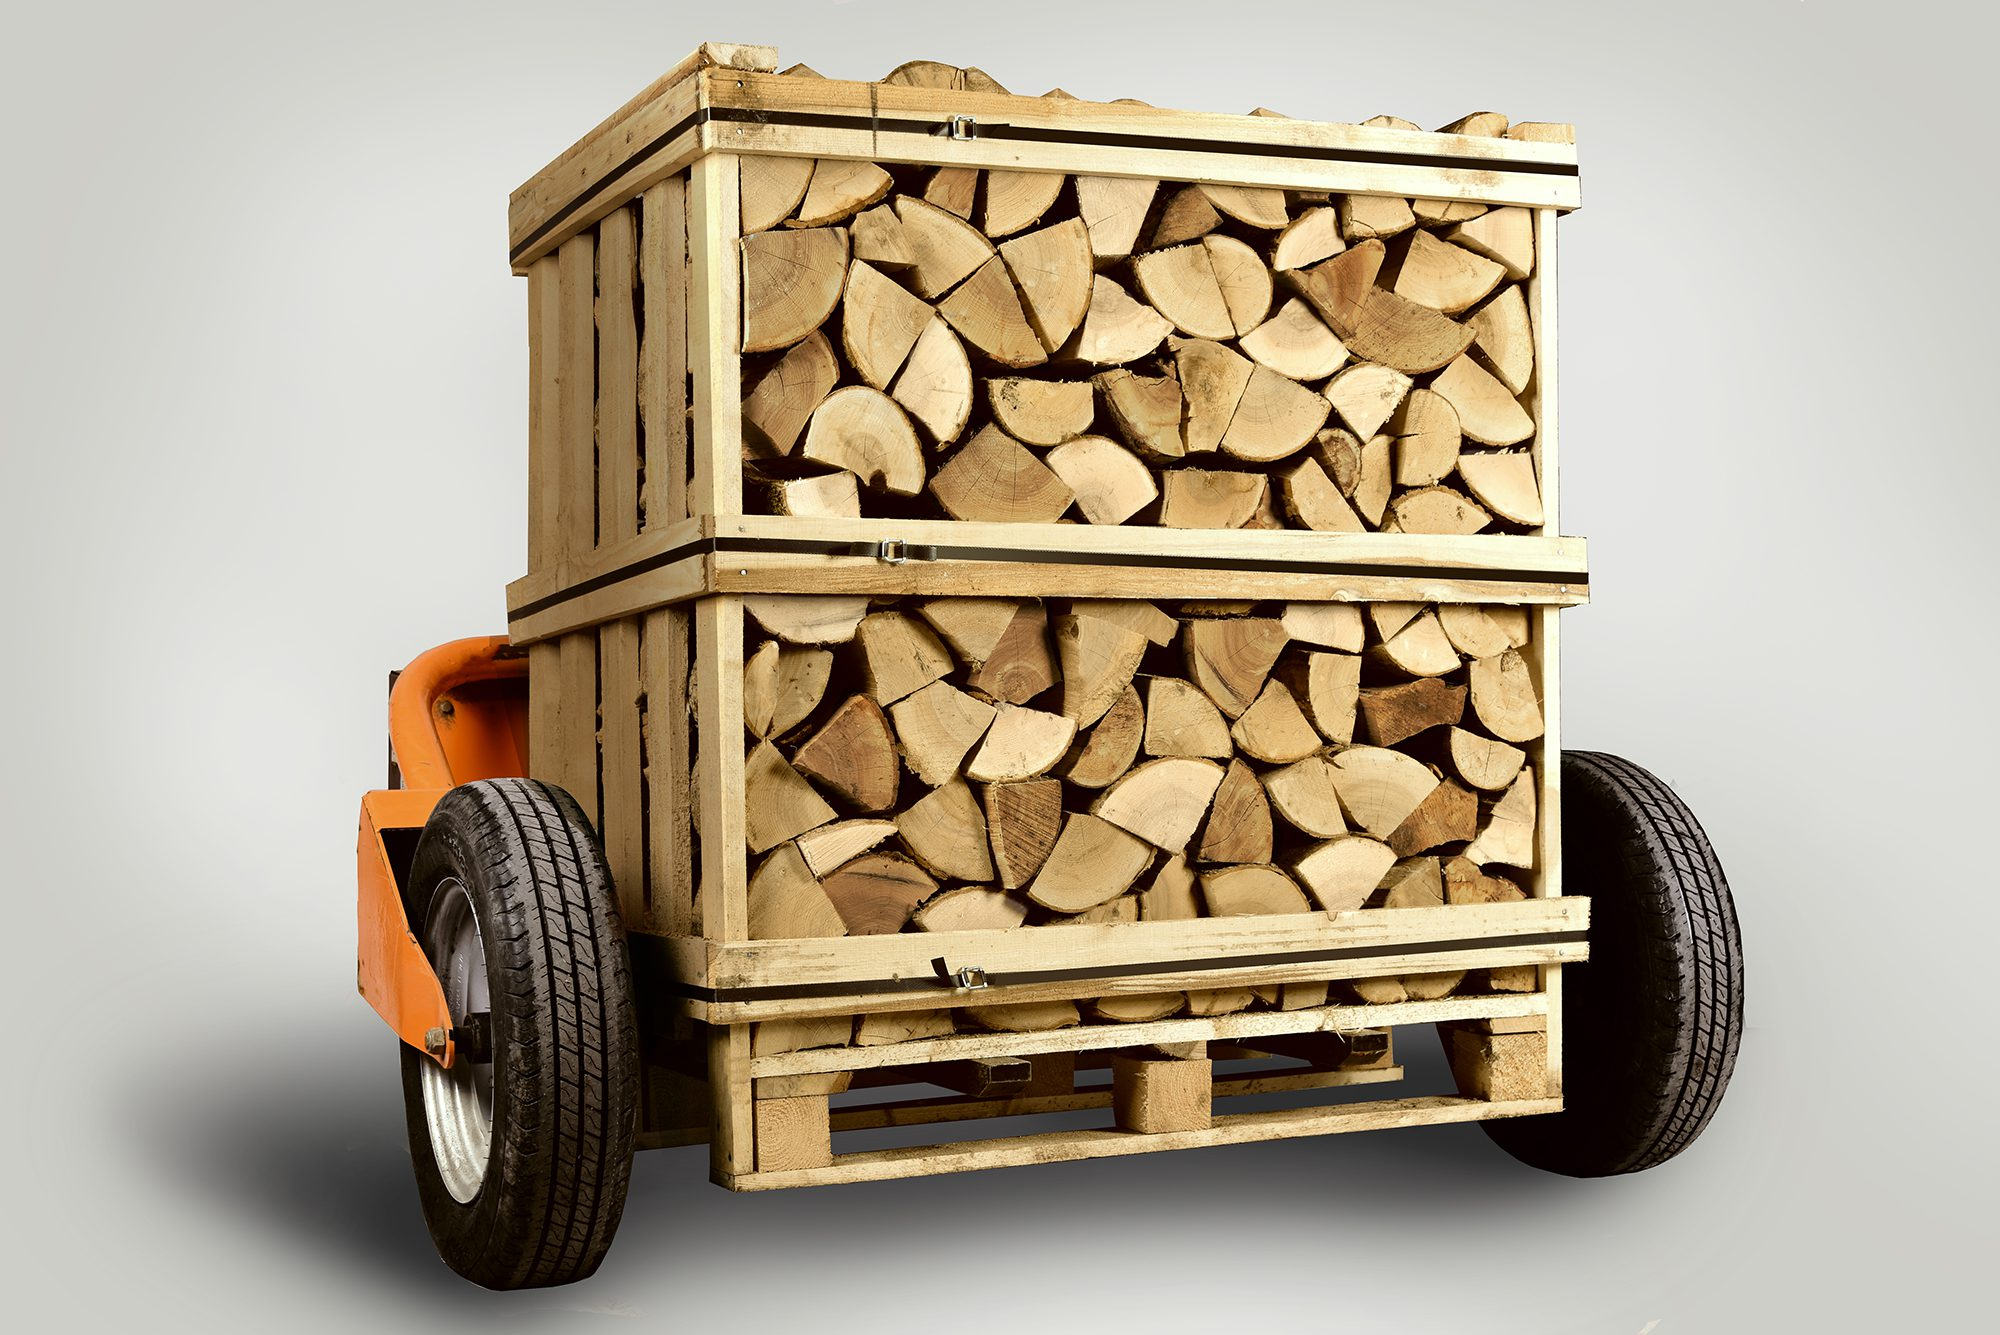 Kiln Dried Mixed Hardwood Logs - 1.2m³